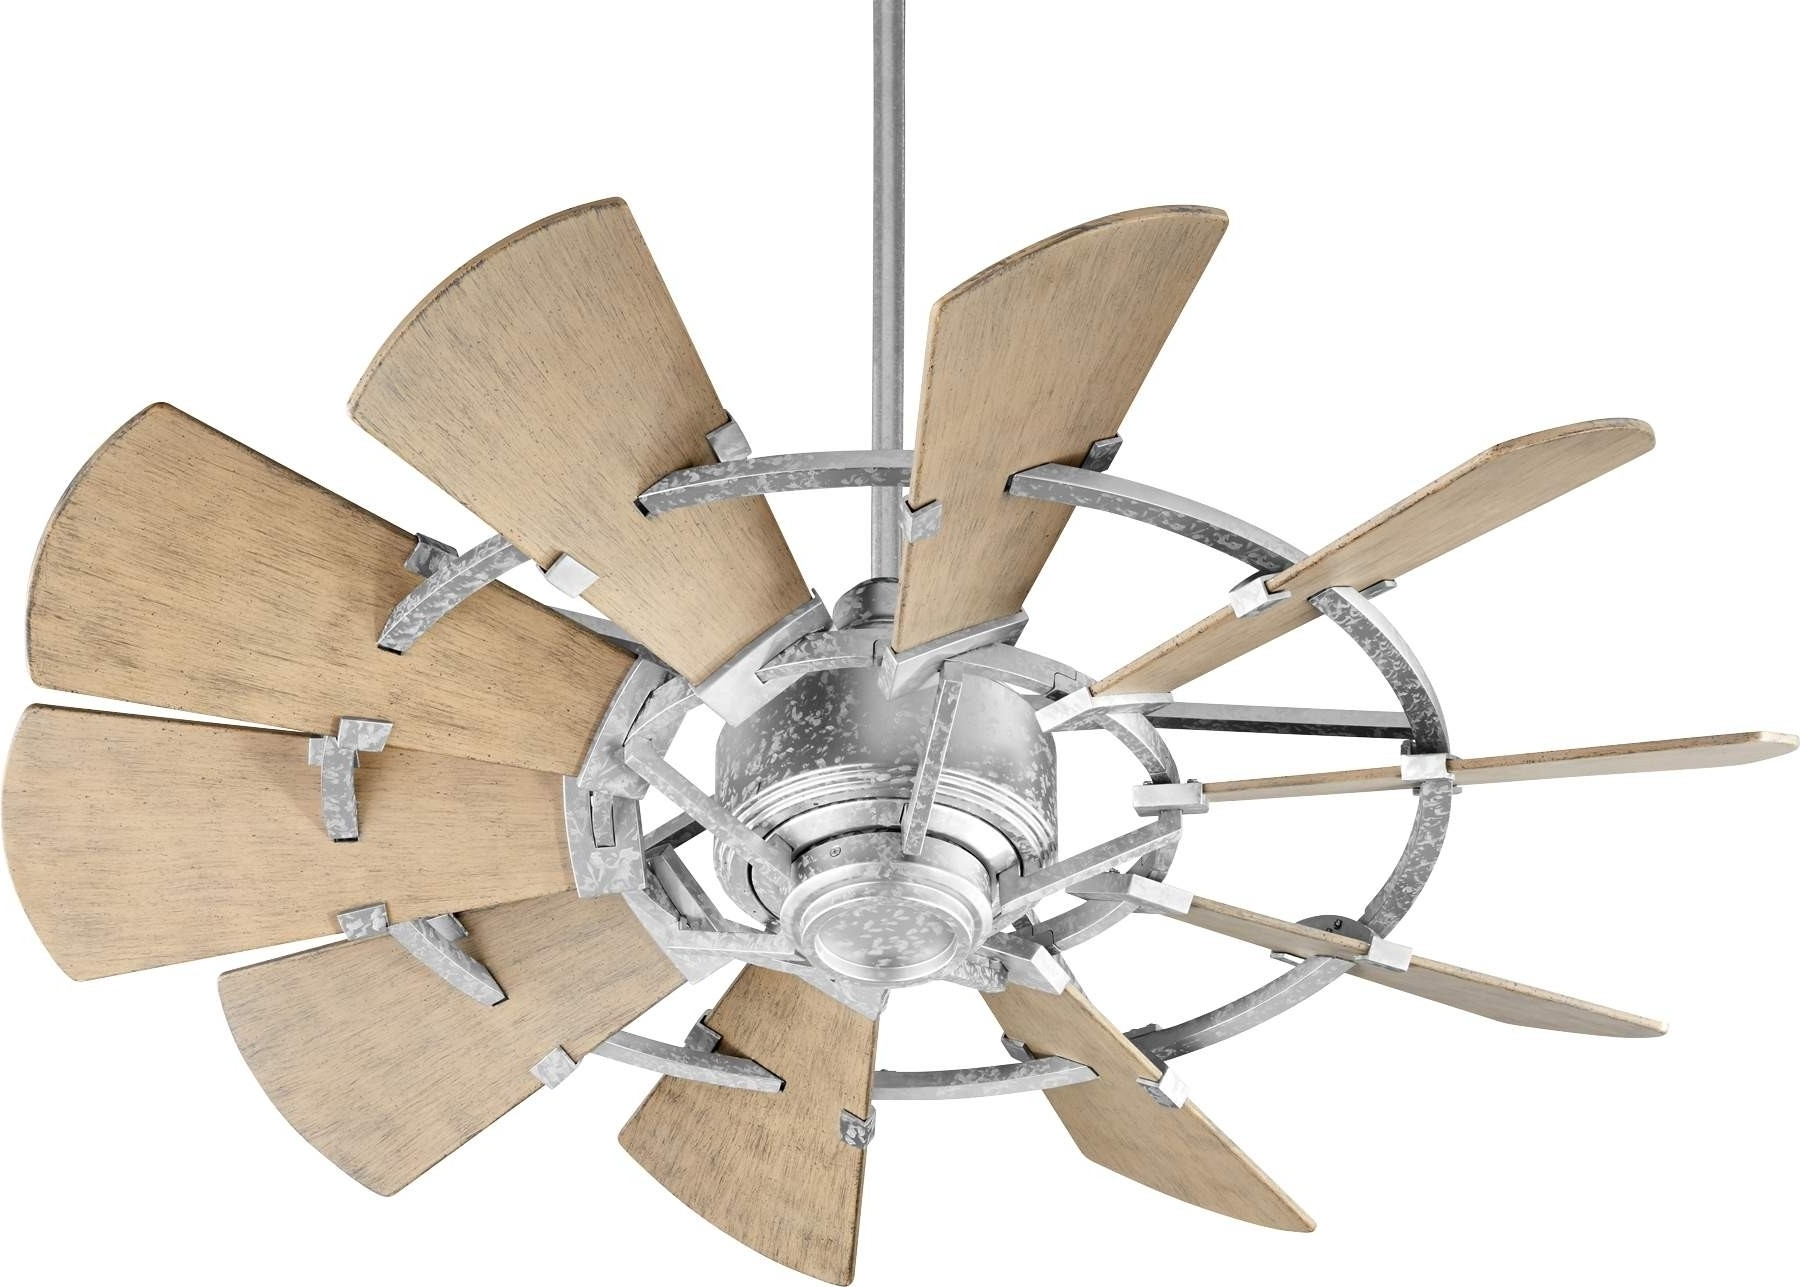 Preferred Quorum Windmill Ceiling Fan Model 194410 9 In Galvanized Inside Outdoor Windmill Ceiling Fans With Light (View 18 of 20)